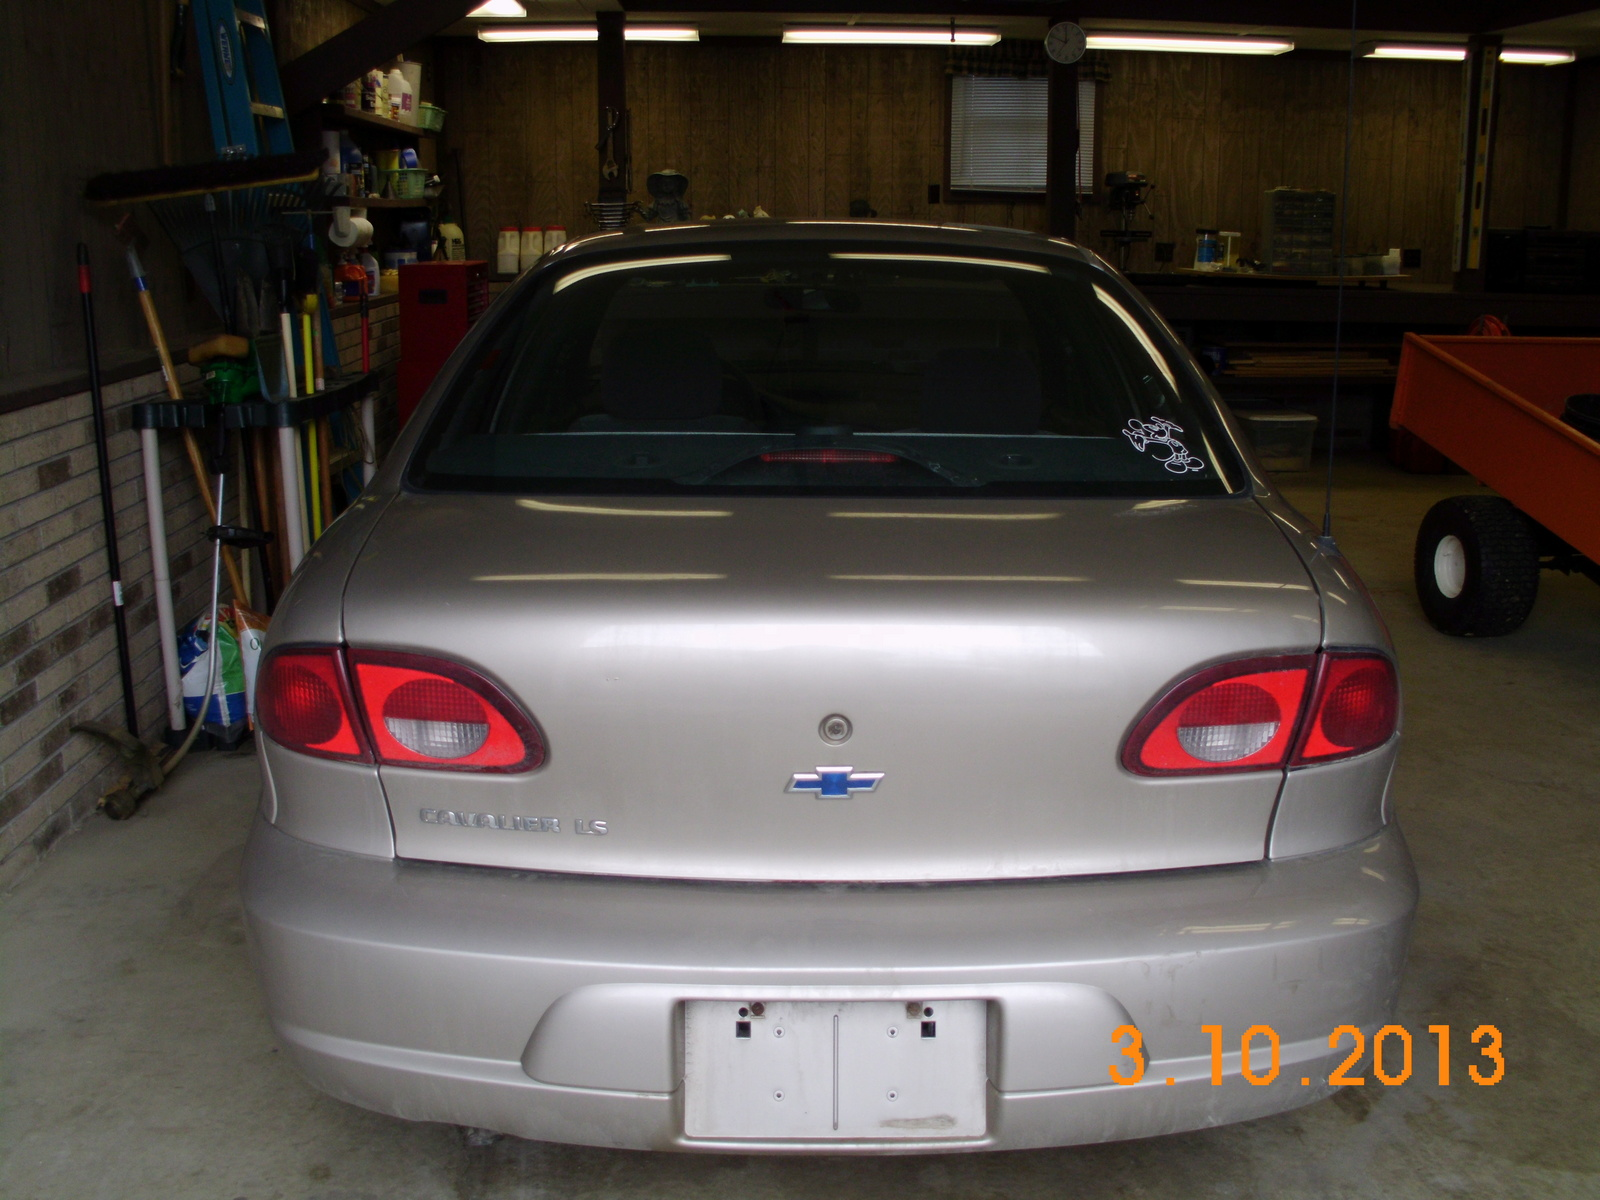 Picture of 2002 Chevrolet Cavalier LS